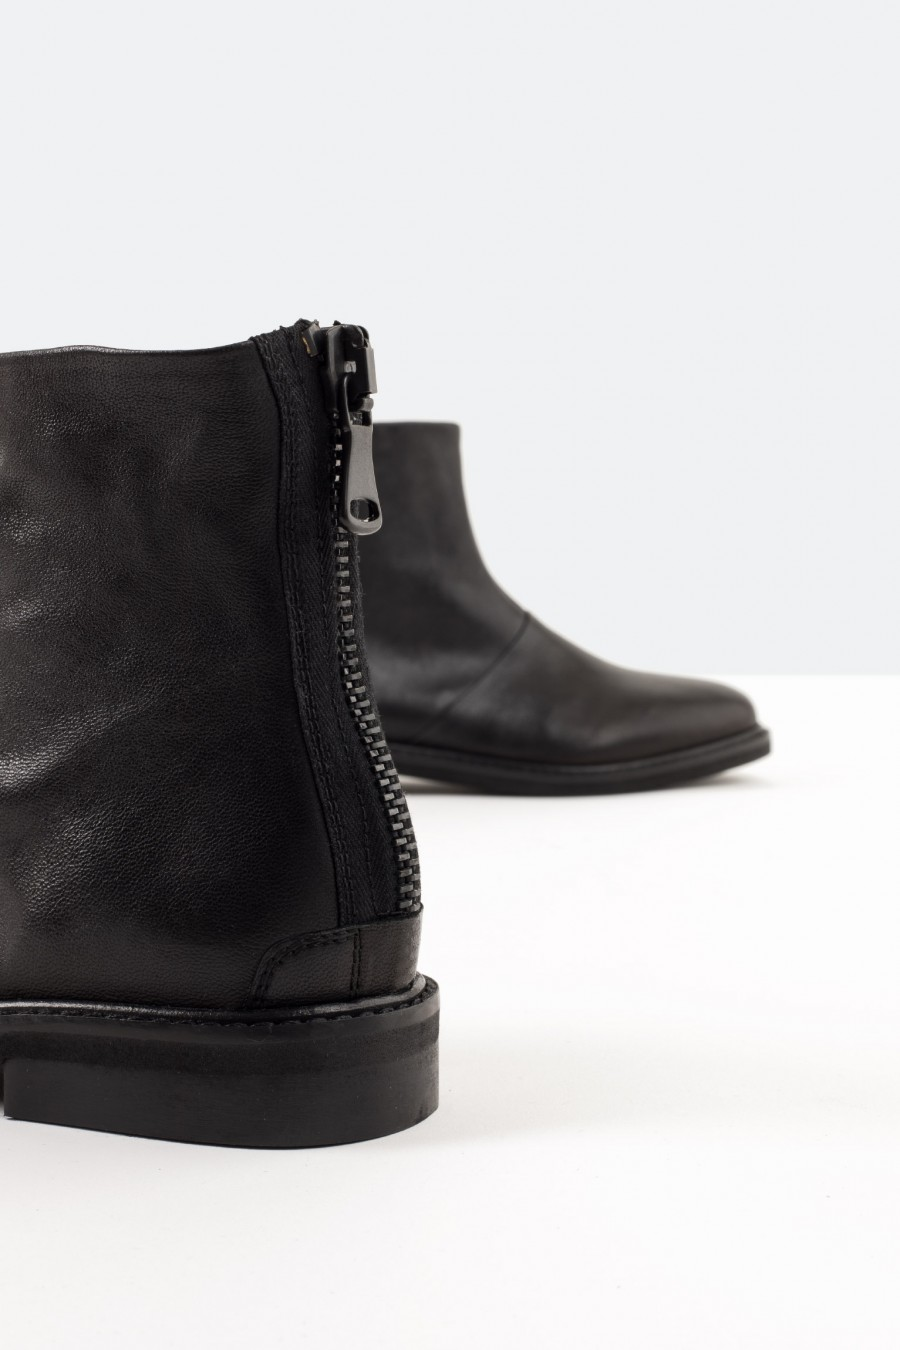 Black leather boots with back zip